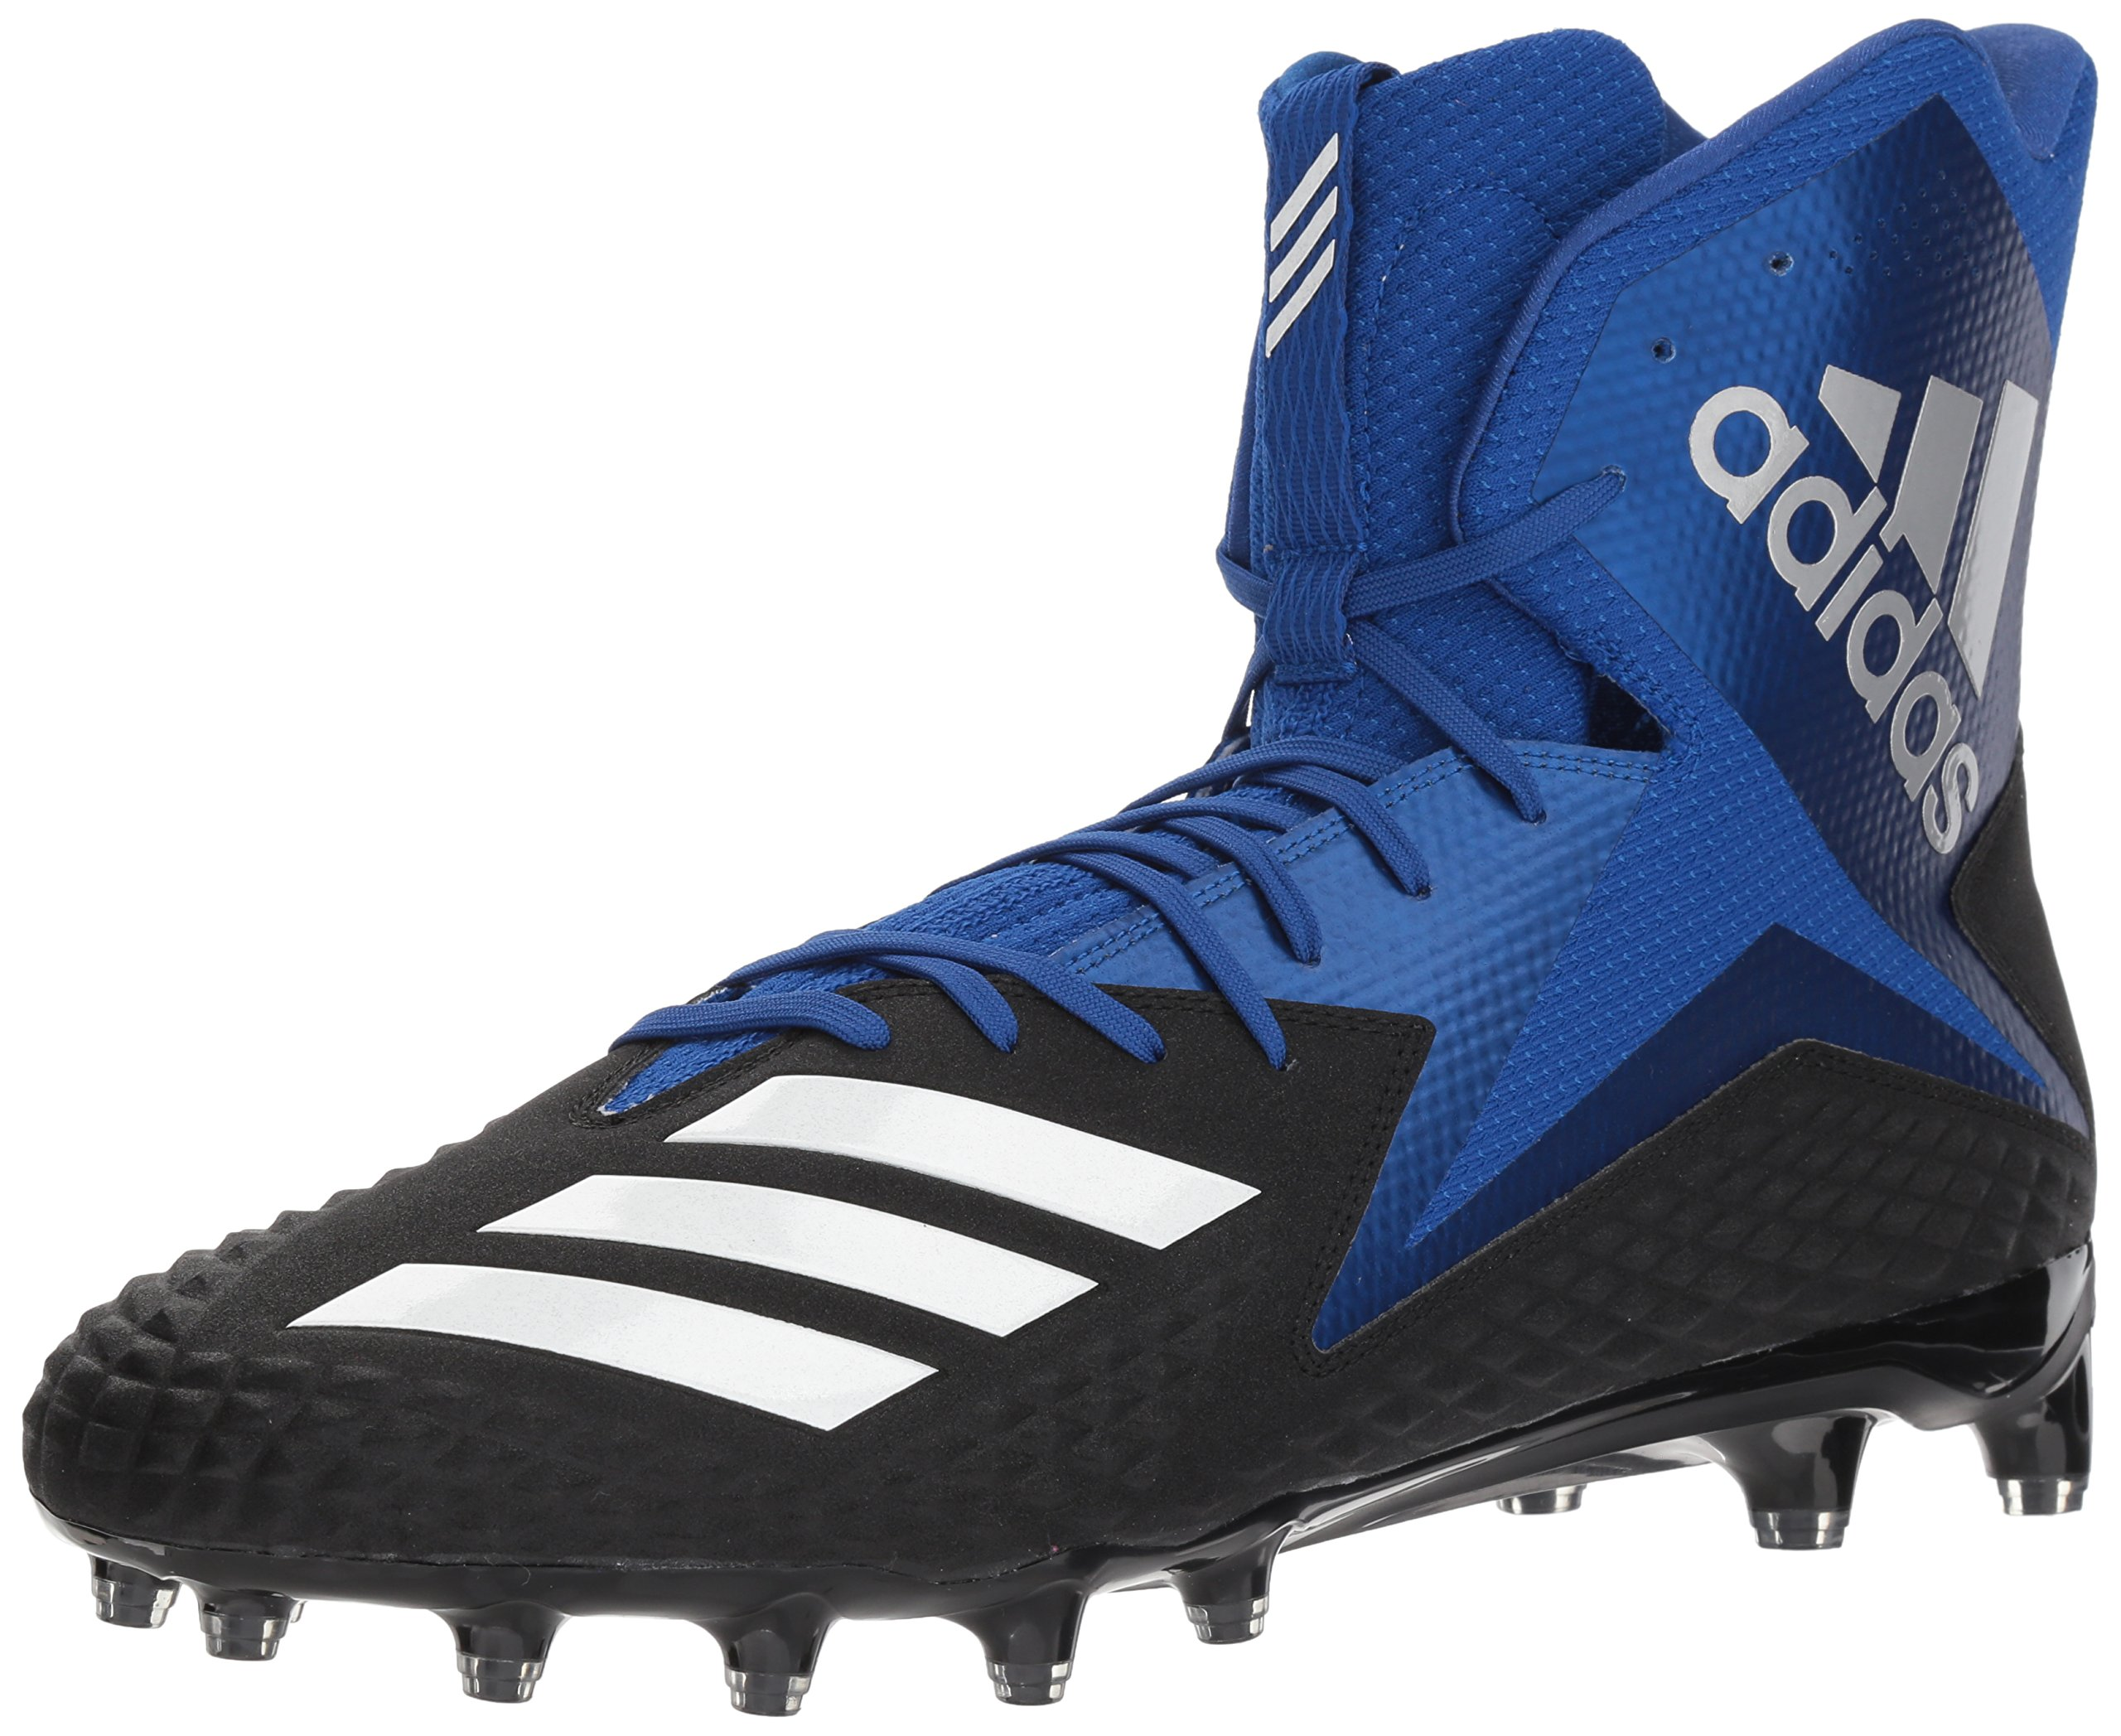 adidas Men's Freak X Carbon Mid Football Shoe, Core Black/White/Collegiate Royal, 13 M US by adidas